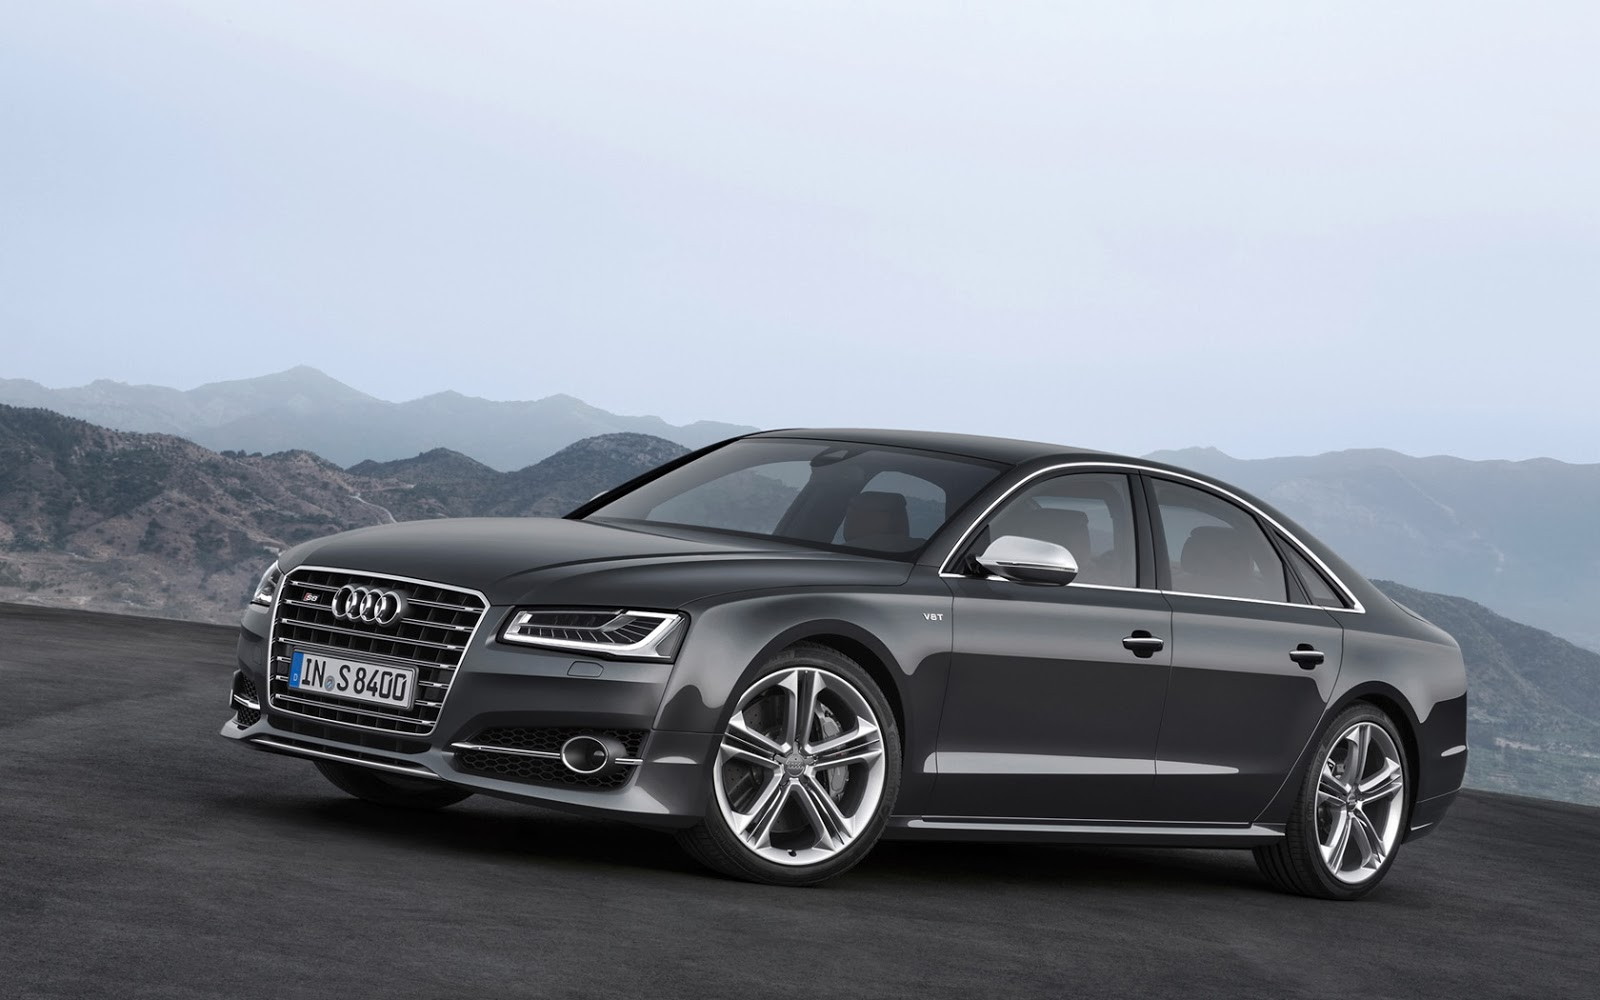 2014 audi s8 review price design and pictures auto review 2014. Black Bedroom Furniture Sets. Home Design Ideas